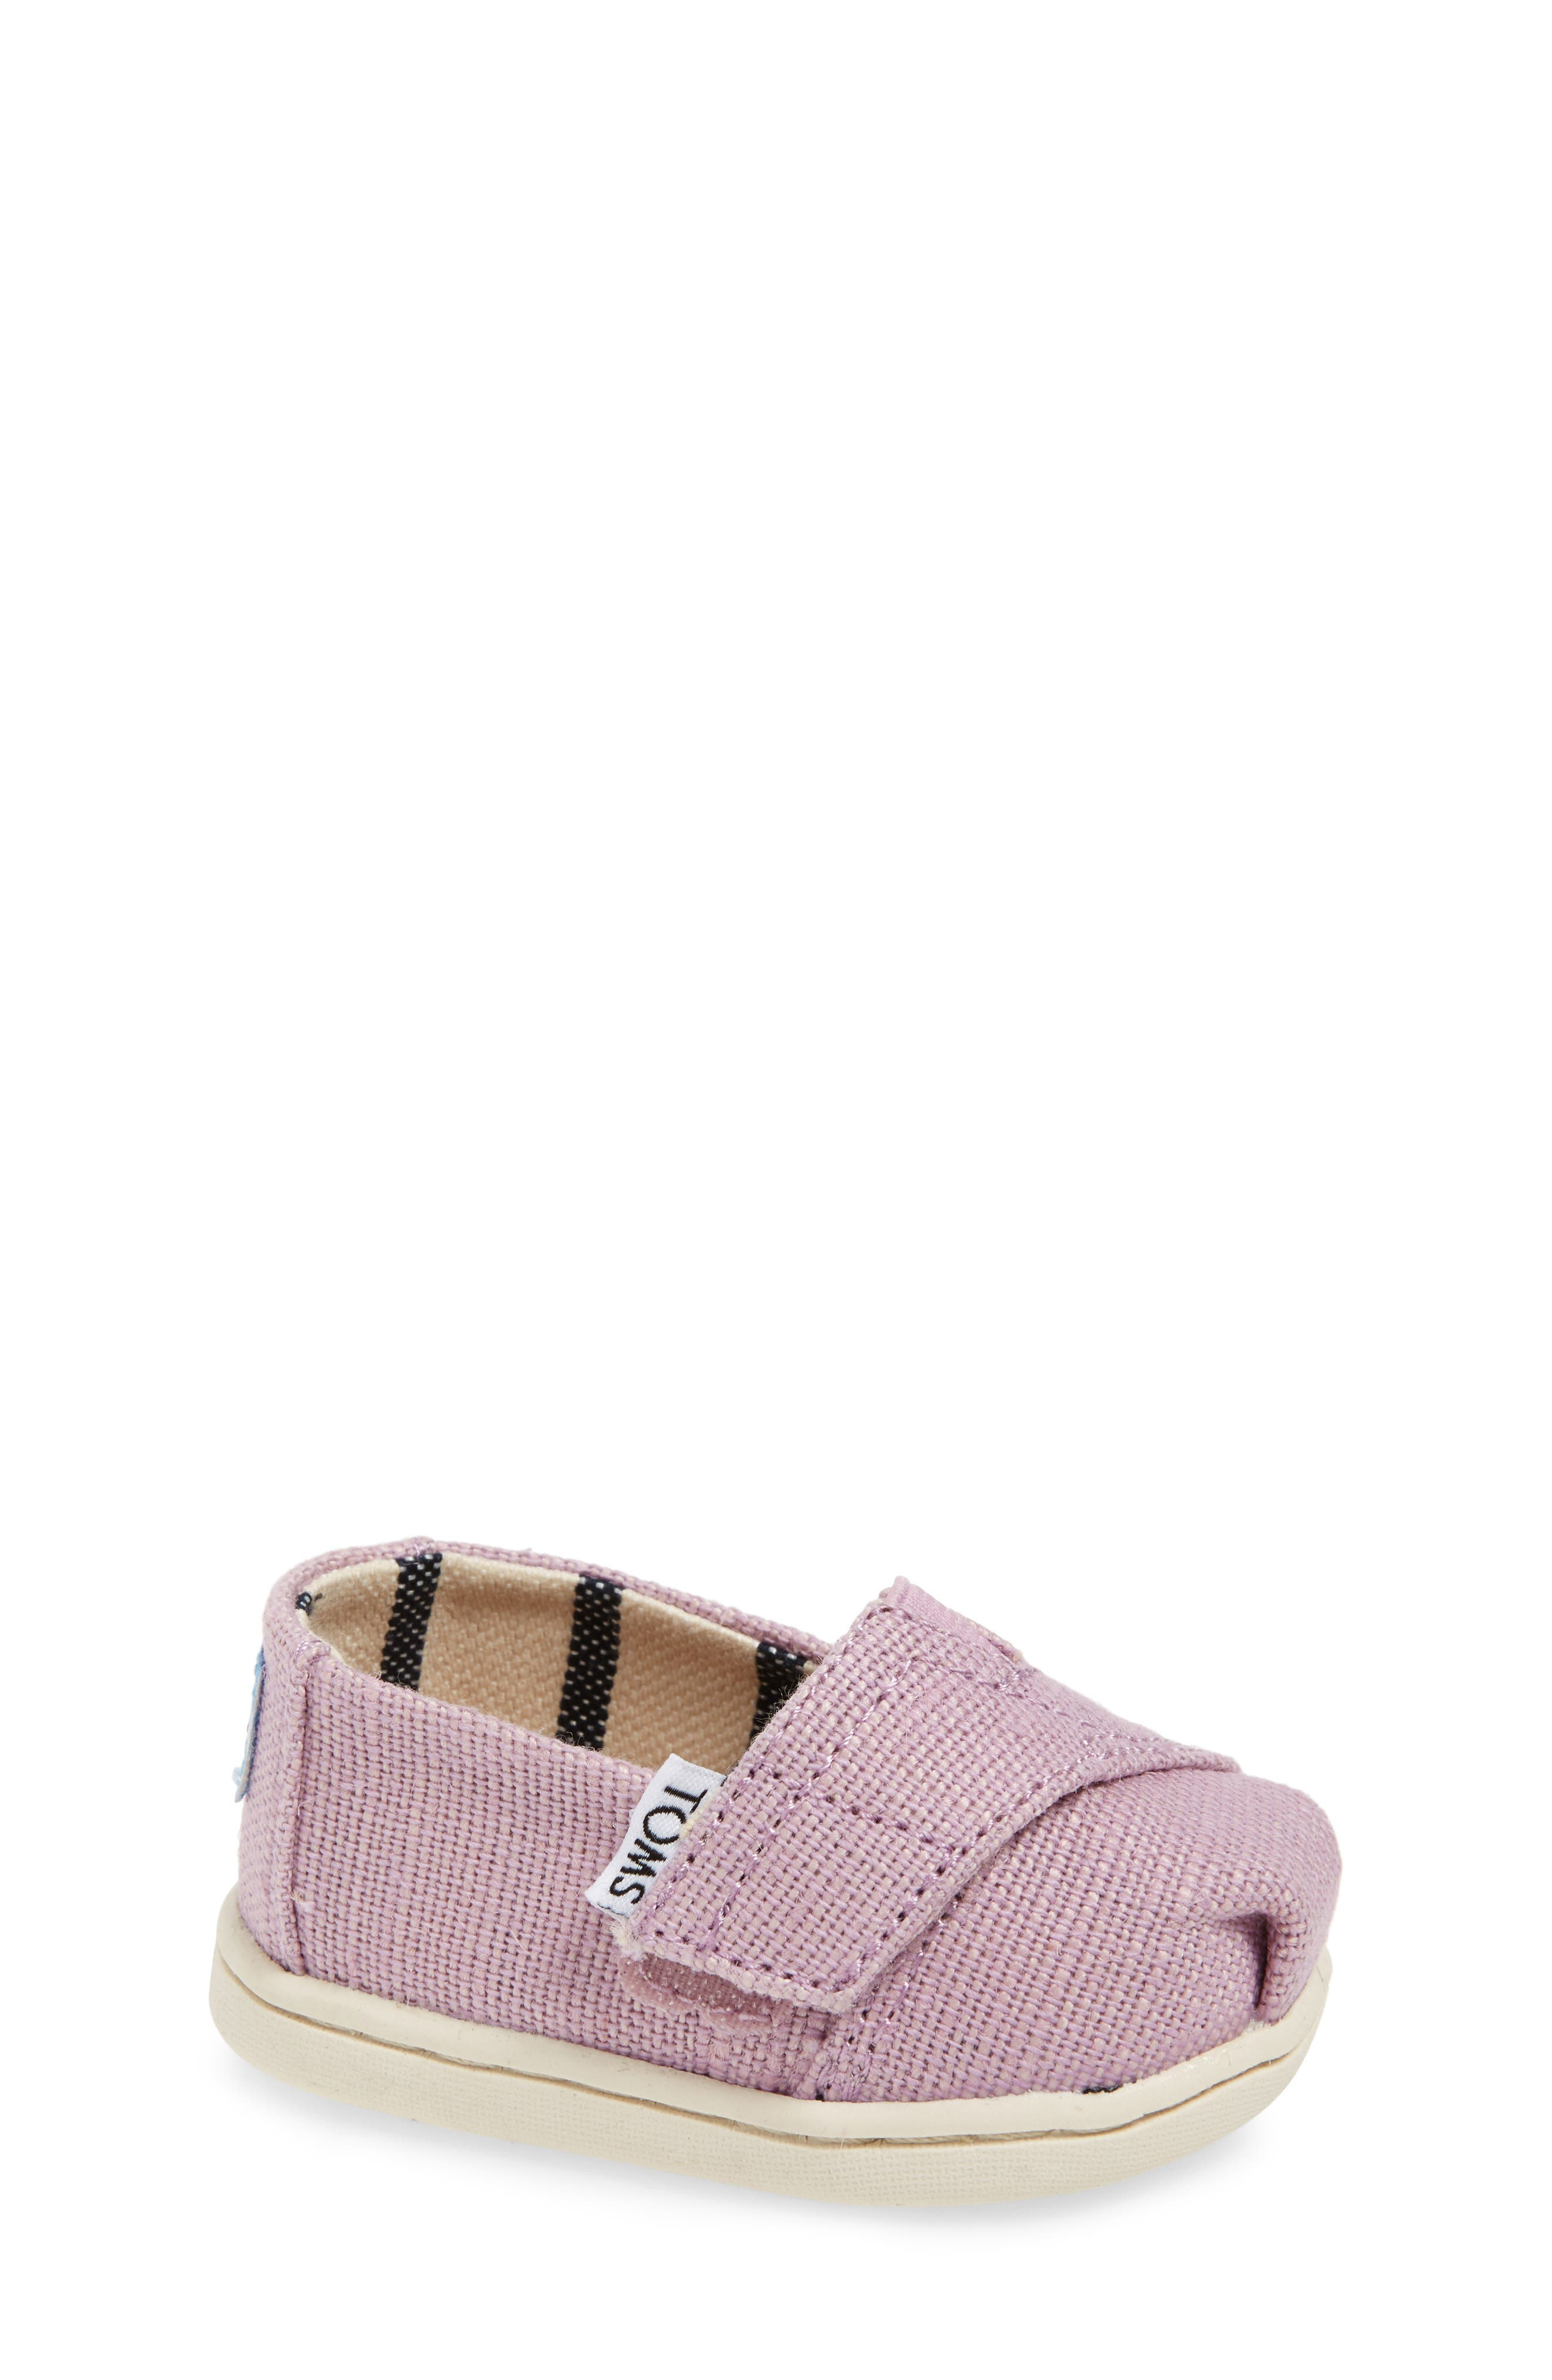 Heritage Canvas Slip-On,                         Main,                         color, SOFT LILAC HERITAGE CANVAS